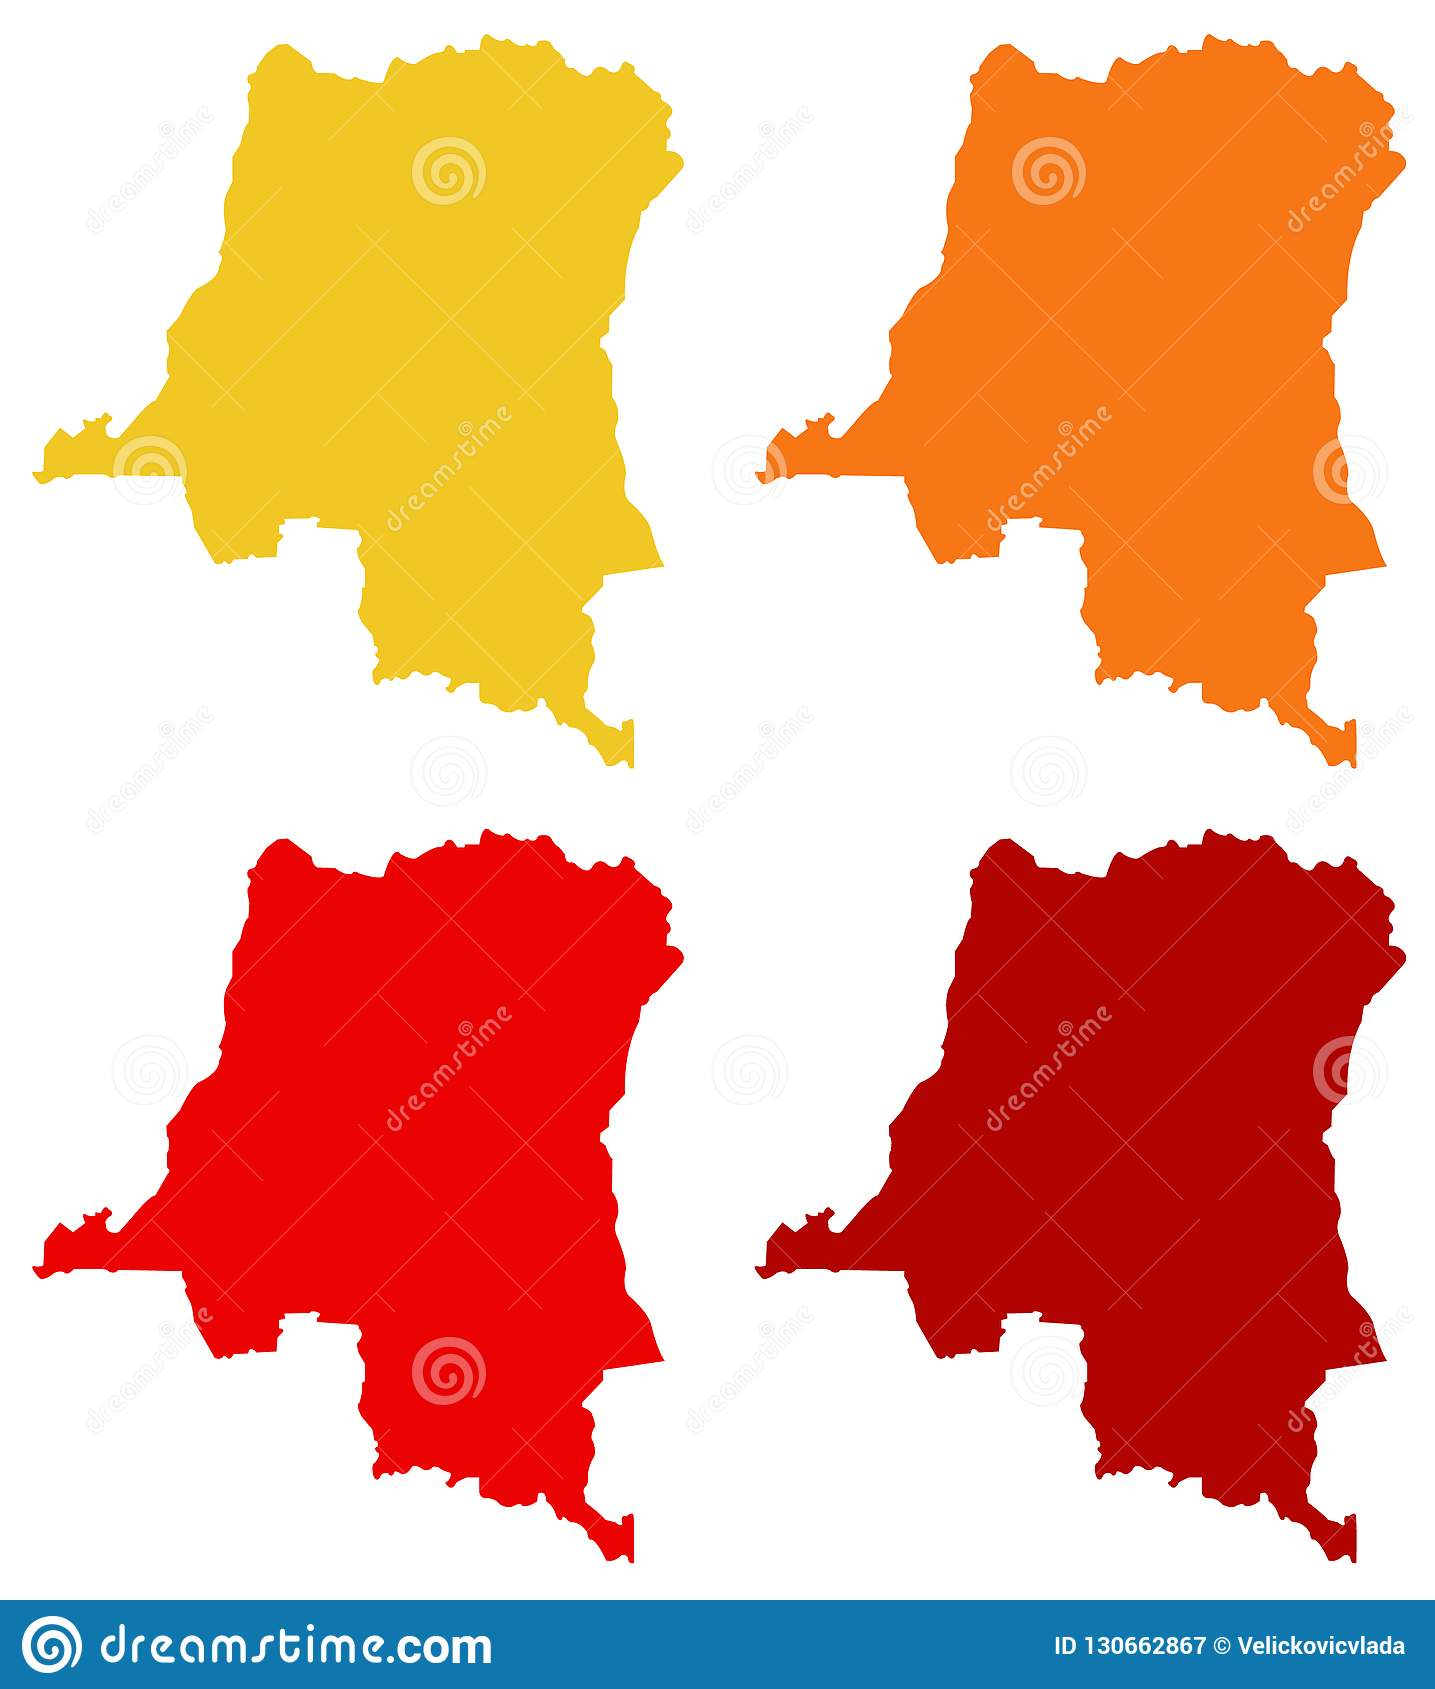 Congo On Africa Map.Democratic Republic Of The Congo Map Country In Central Africa